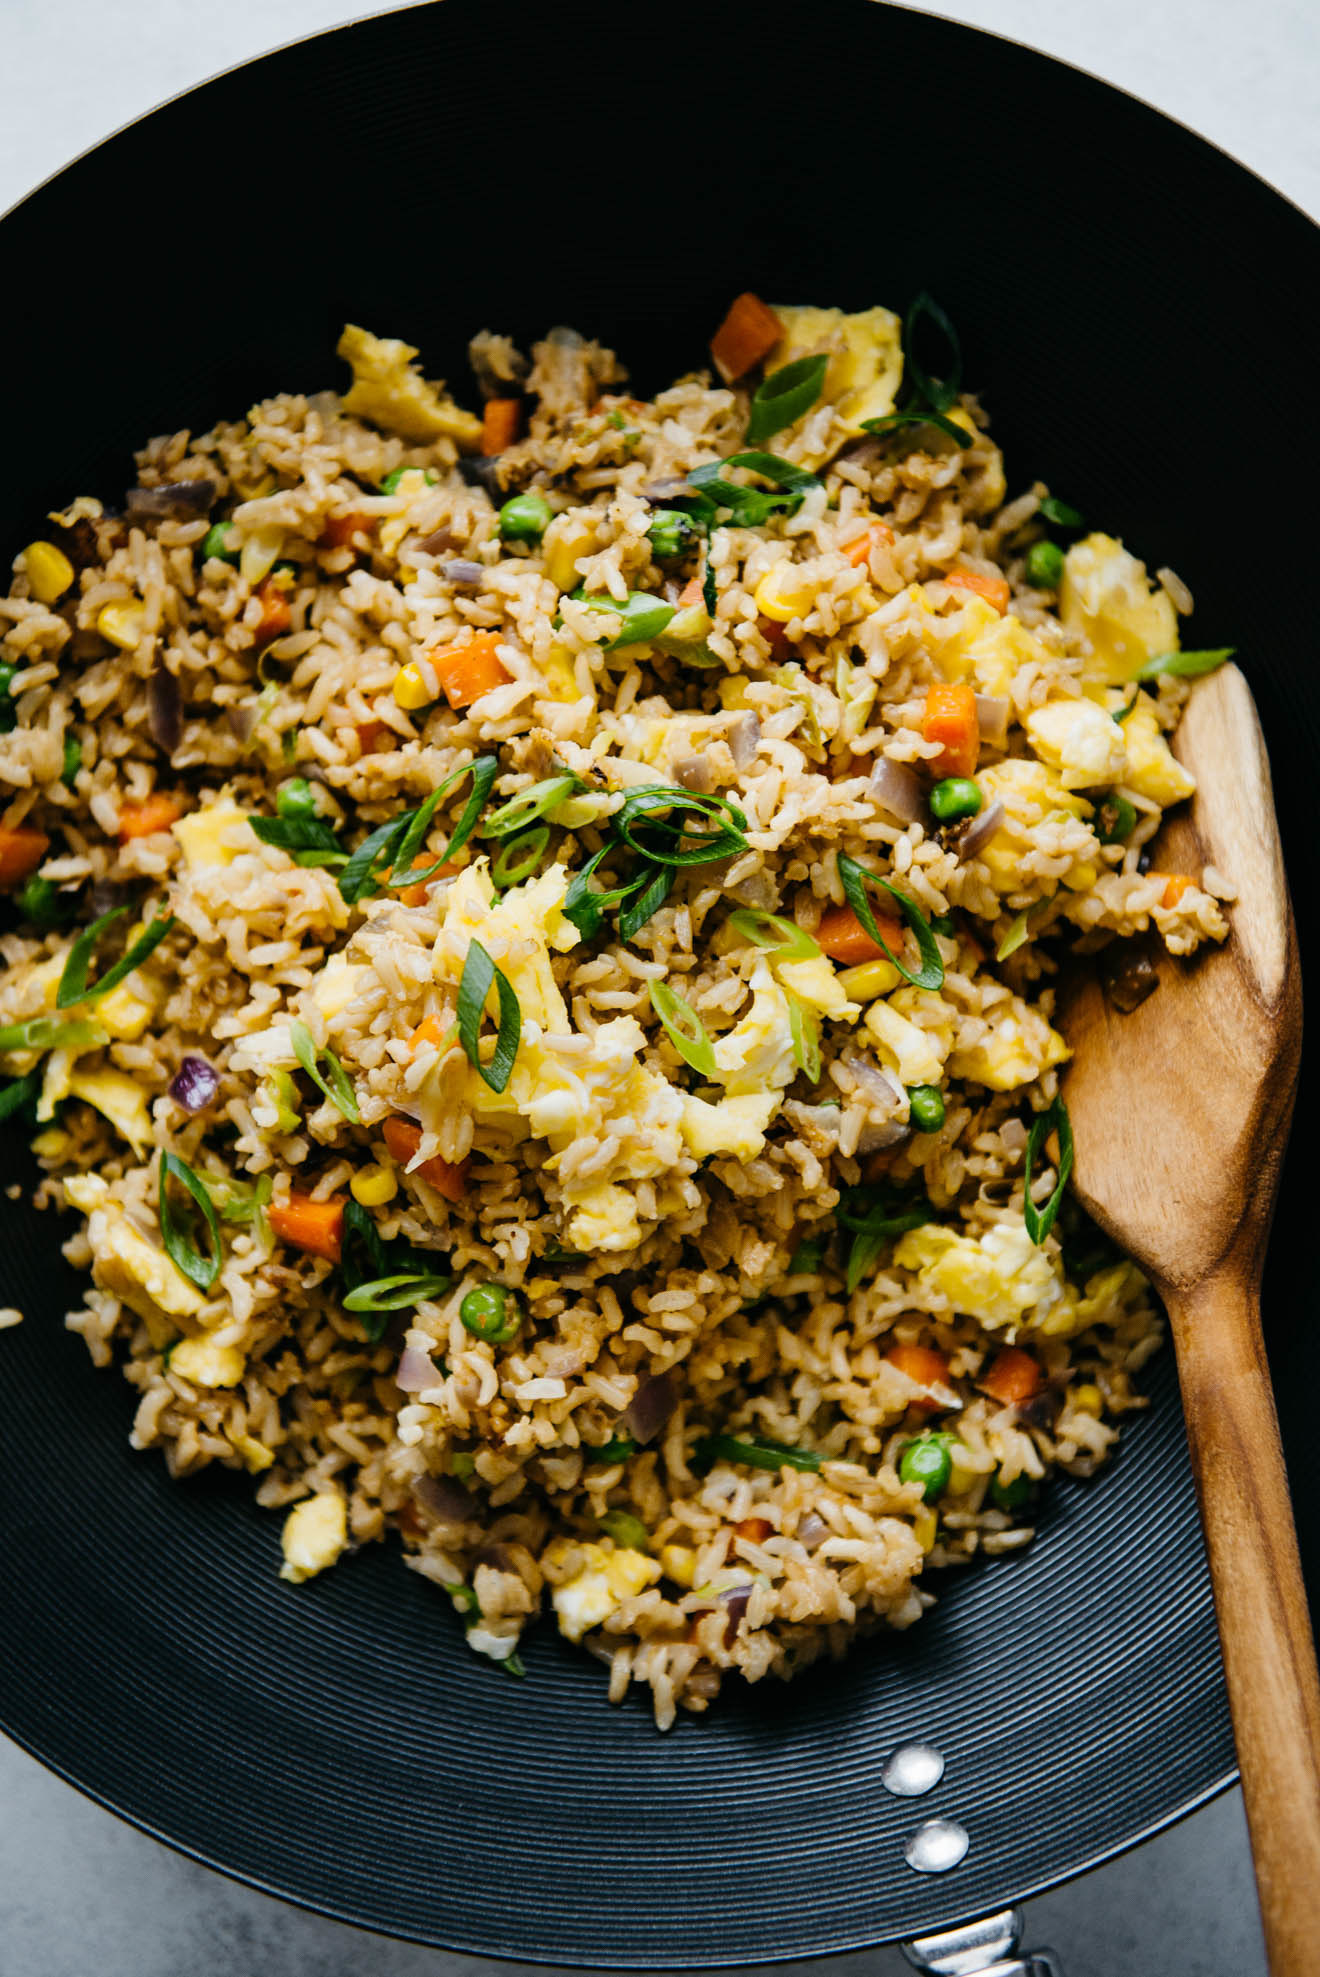 Egg fried rice in a skillet.